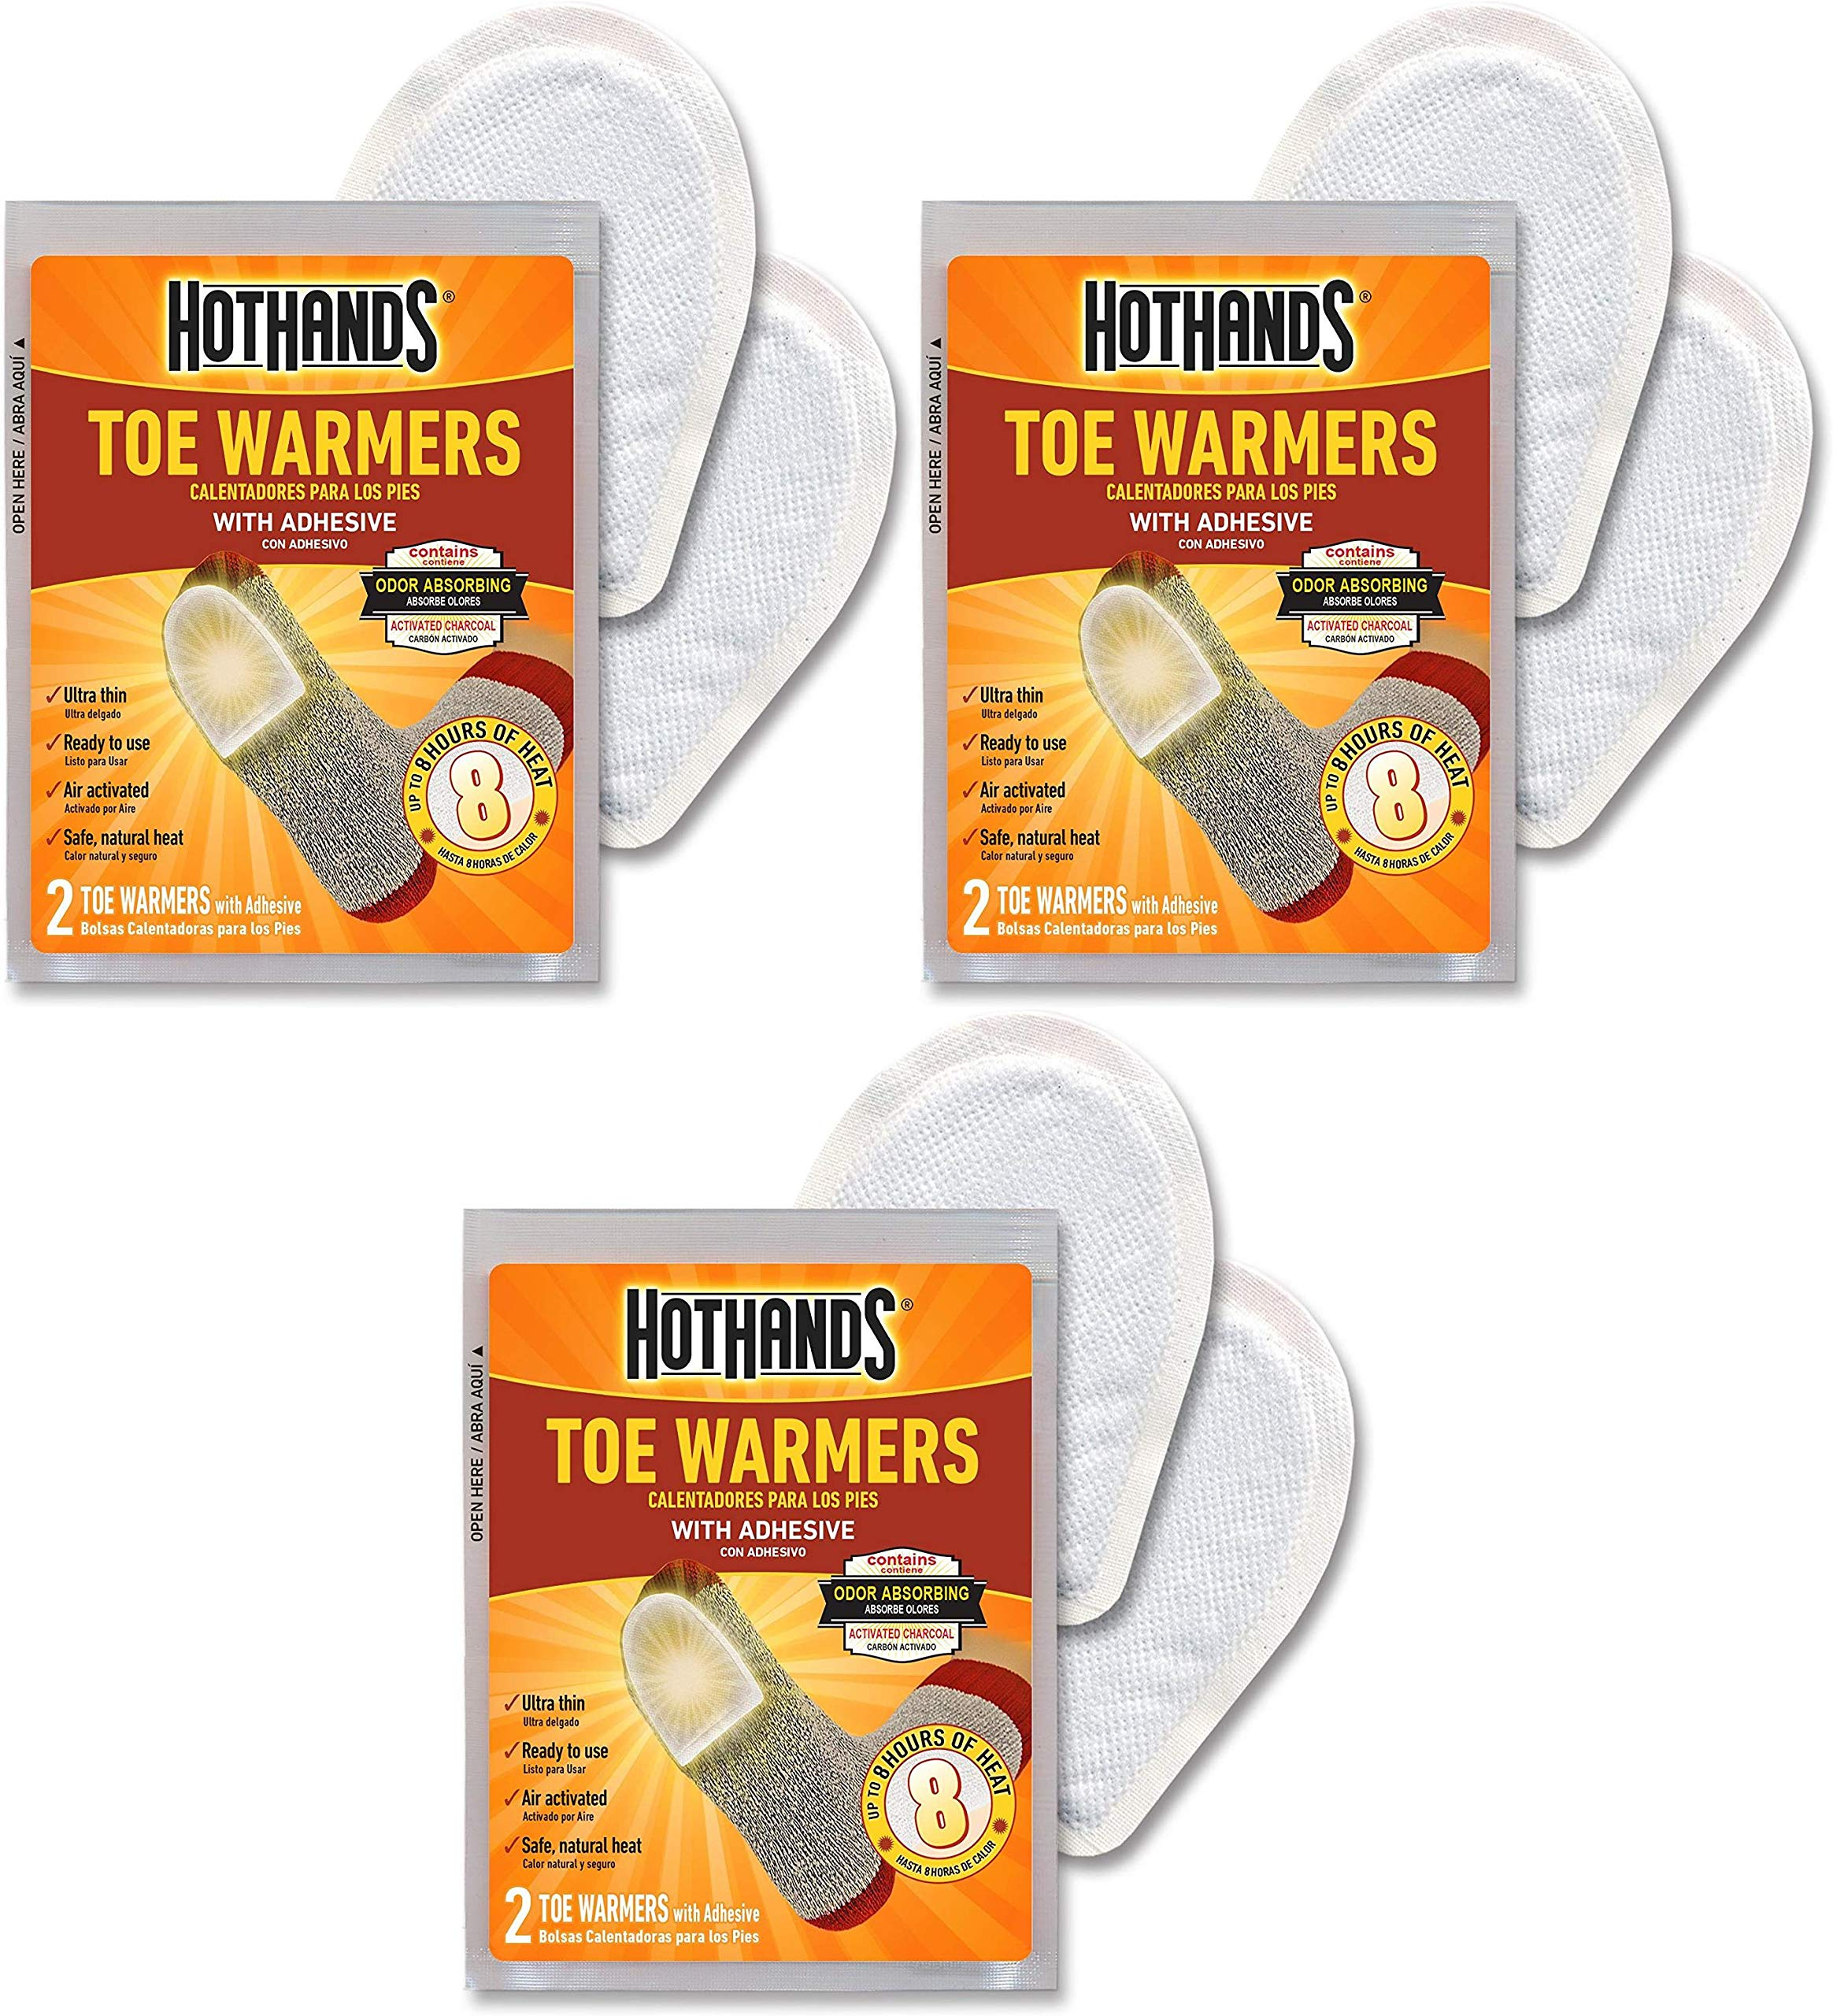 HotHands Toe Warmers 20 Pair Pack of 3 by HotHands